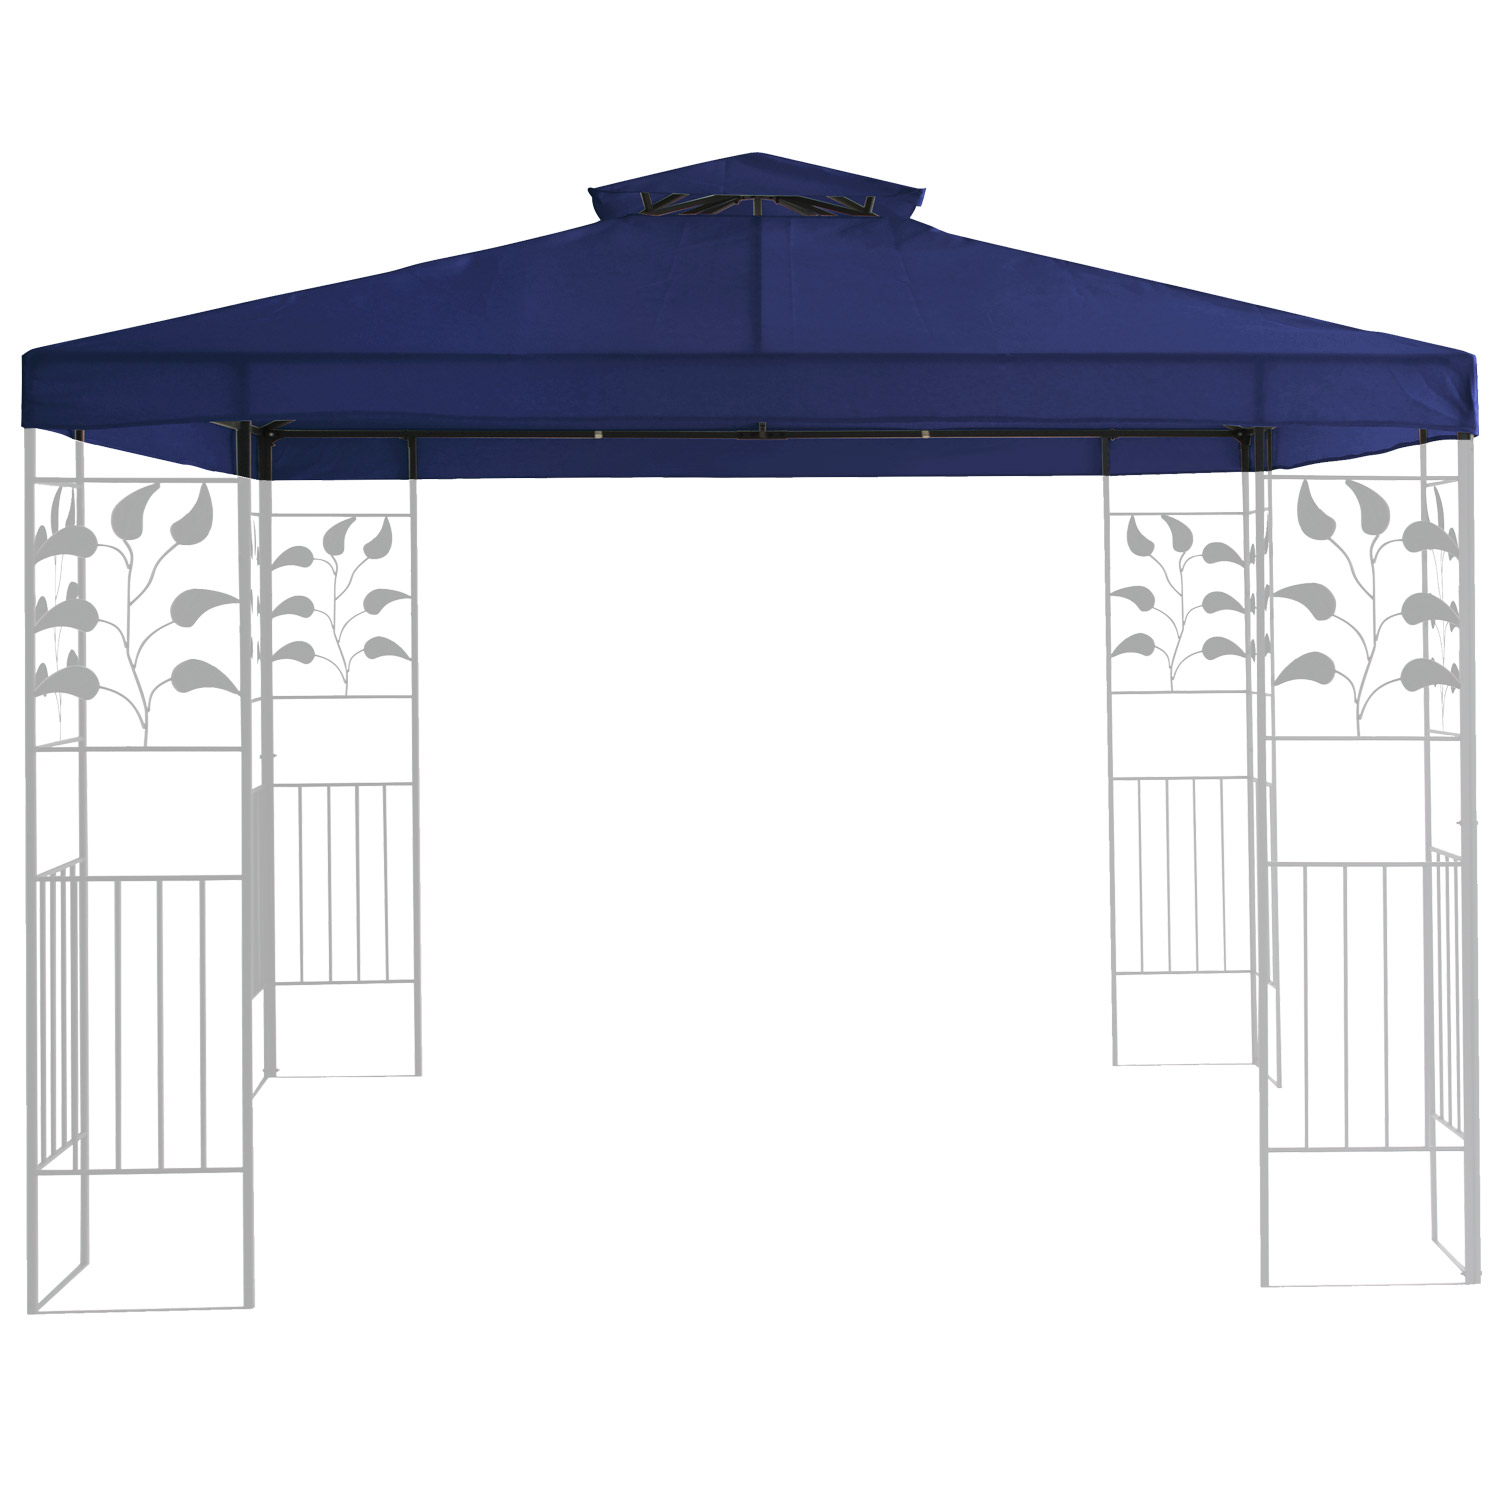 ersatzdach 3x3 m partyzelt gazebo pavillion dach pavillon pavilliondach blau ebay. Black Bedroom Furniture Sets. Home Design Ideas